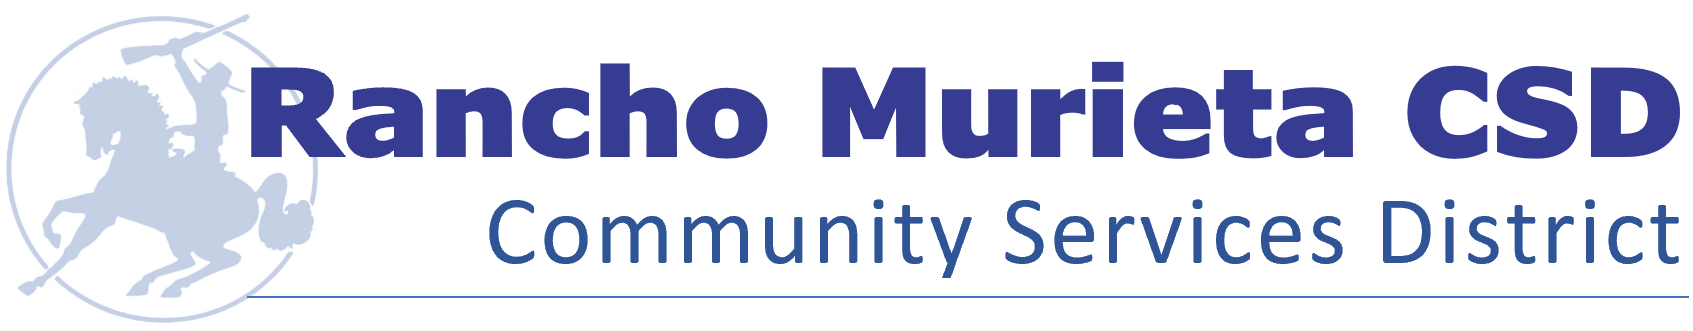 Rancho Murieta Community Services District